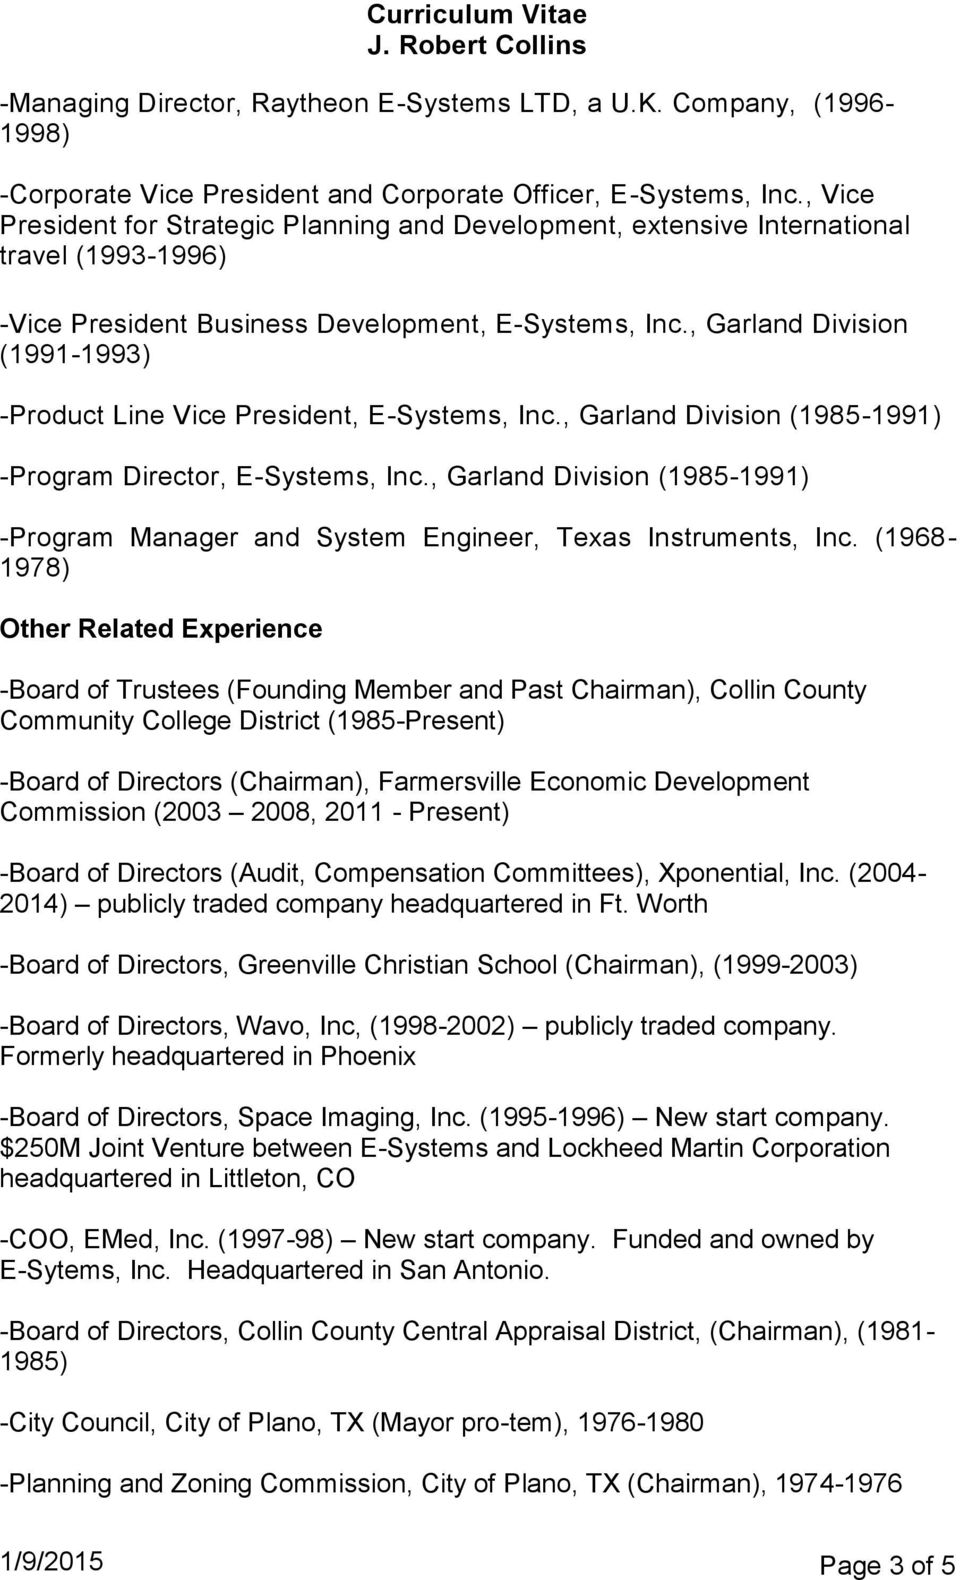 , Garland Division (1991-1993) -Product Line Vice President, E-Systems, Inc., Garland Division (1985-1991) -Program Director, E-Systems, Inc.